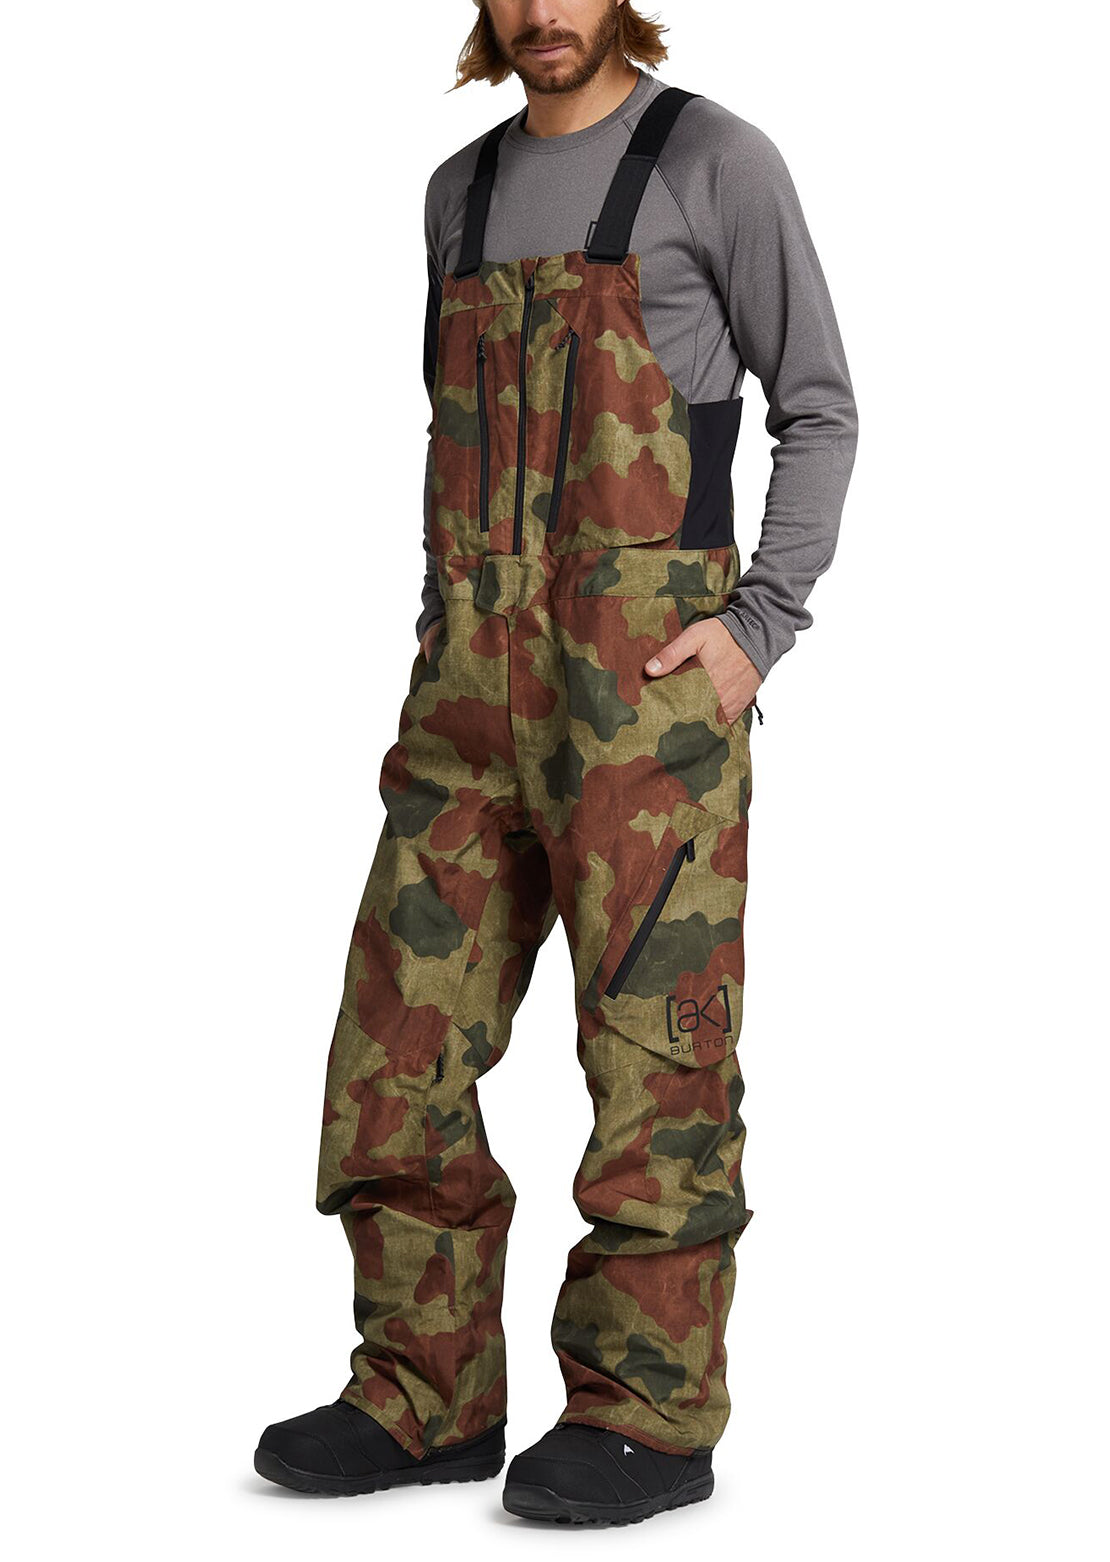 Burton AK Men's GORE-TEX Cyclic Bib Pants Martini Olive Telo Camo